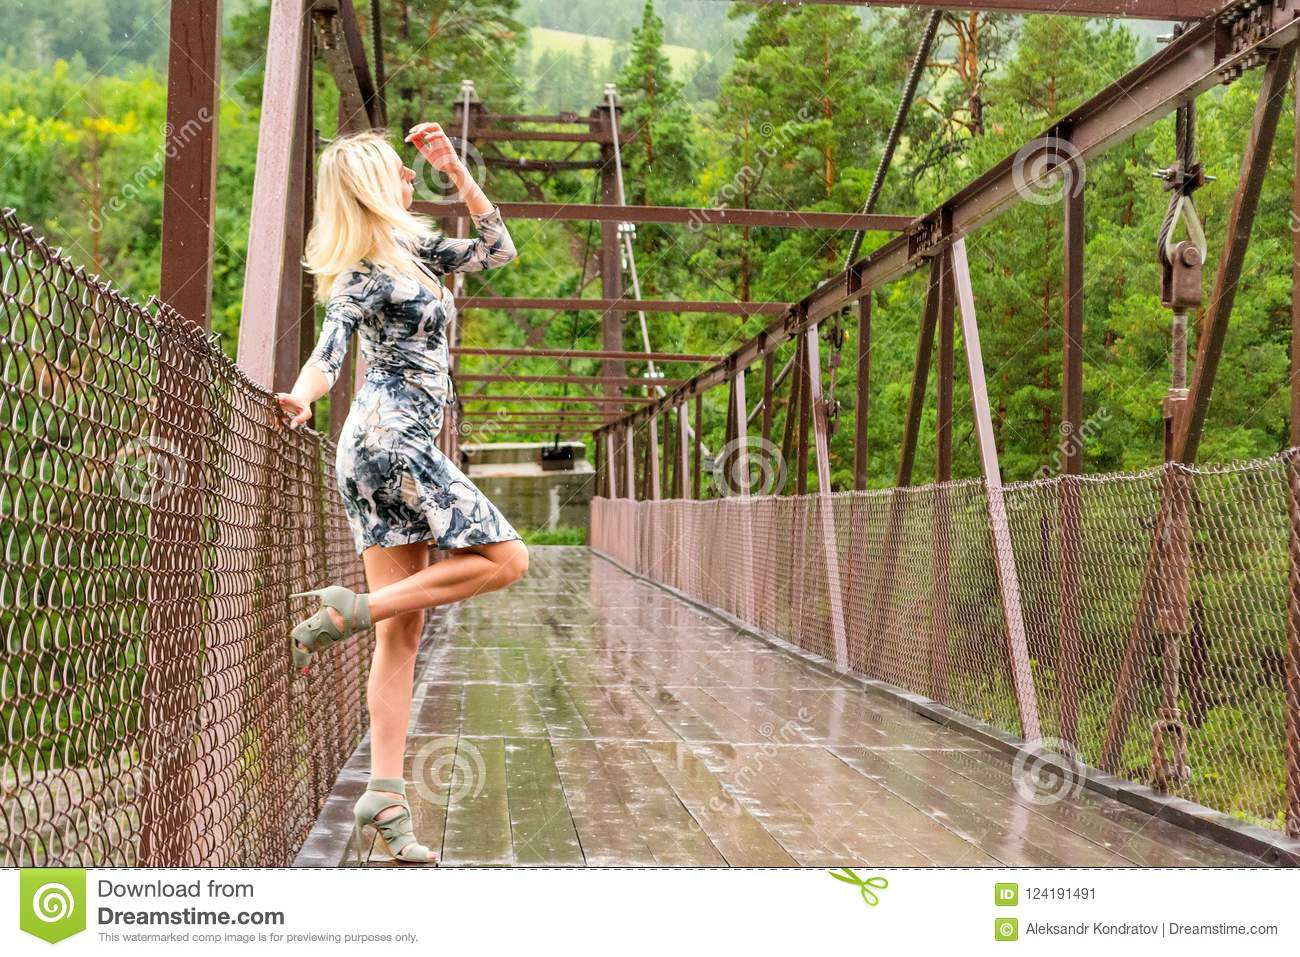 Blonde girl stands on a bridge constructed of metal and wood the